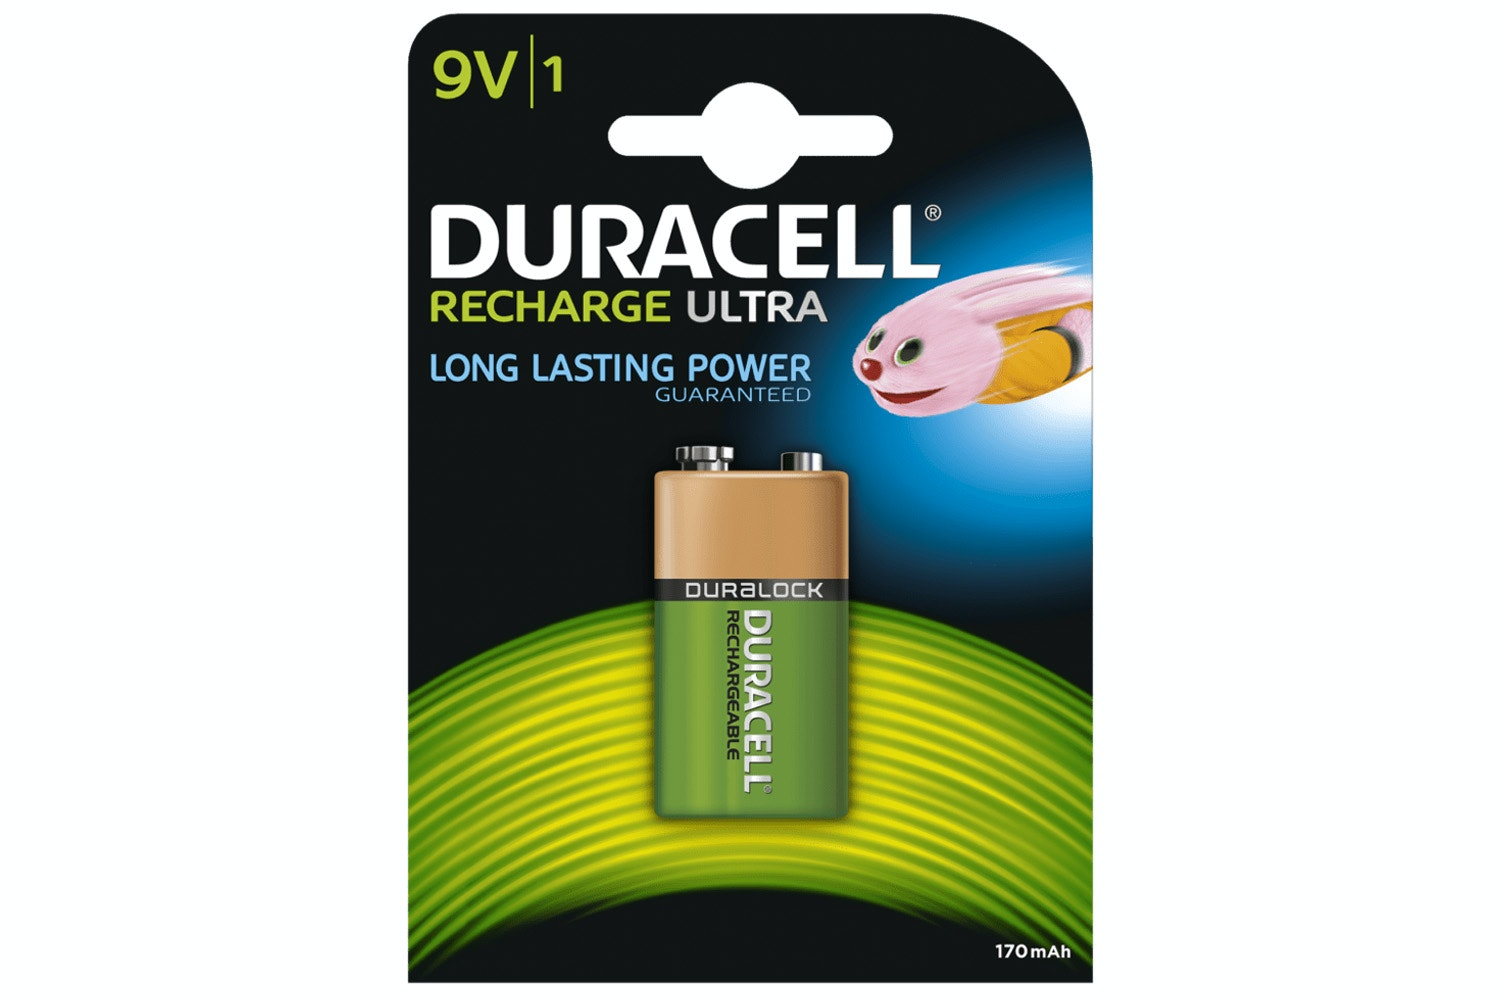 Duracell Rechargeable Ultra 9V Battery | 1 Pack